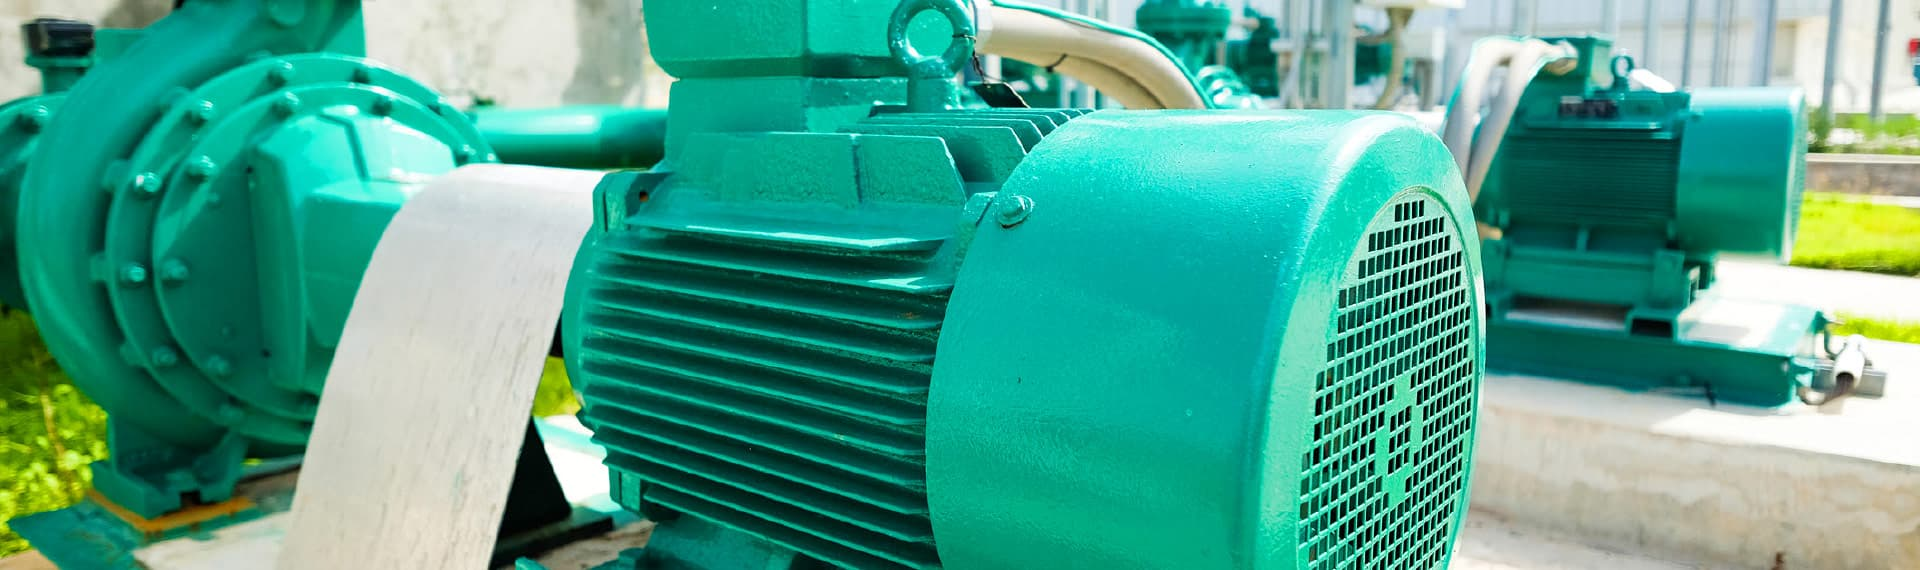 Raypak boilers| hydromatic pumps | commercial water softeners | booster pumps | Heat & Treat Texas